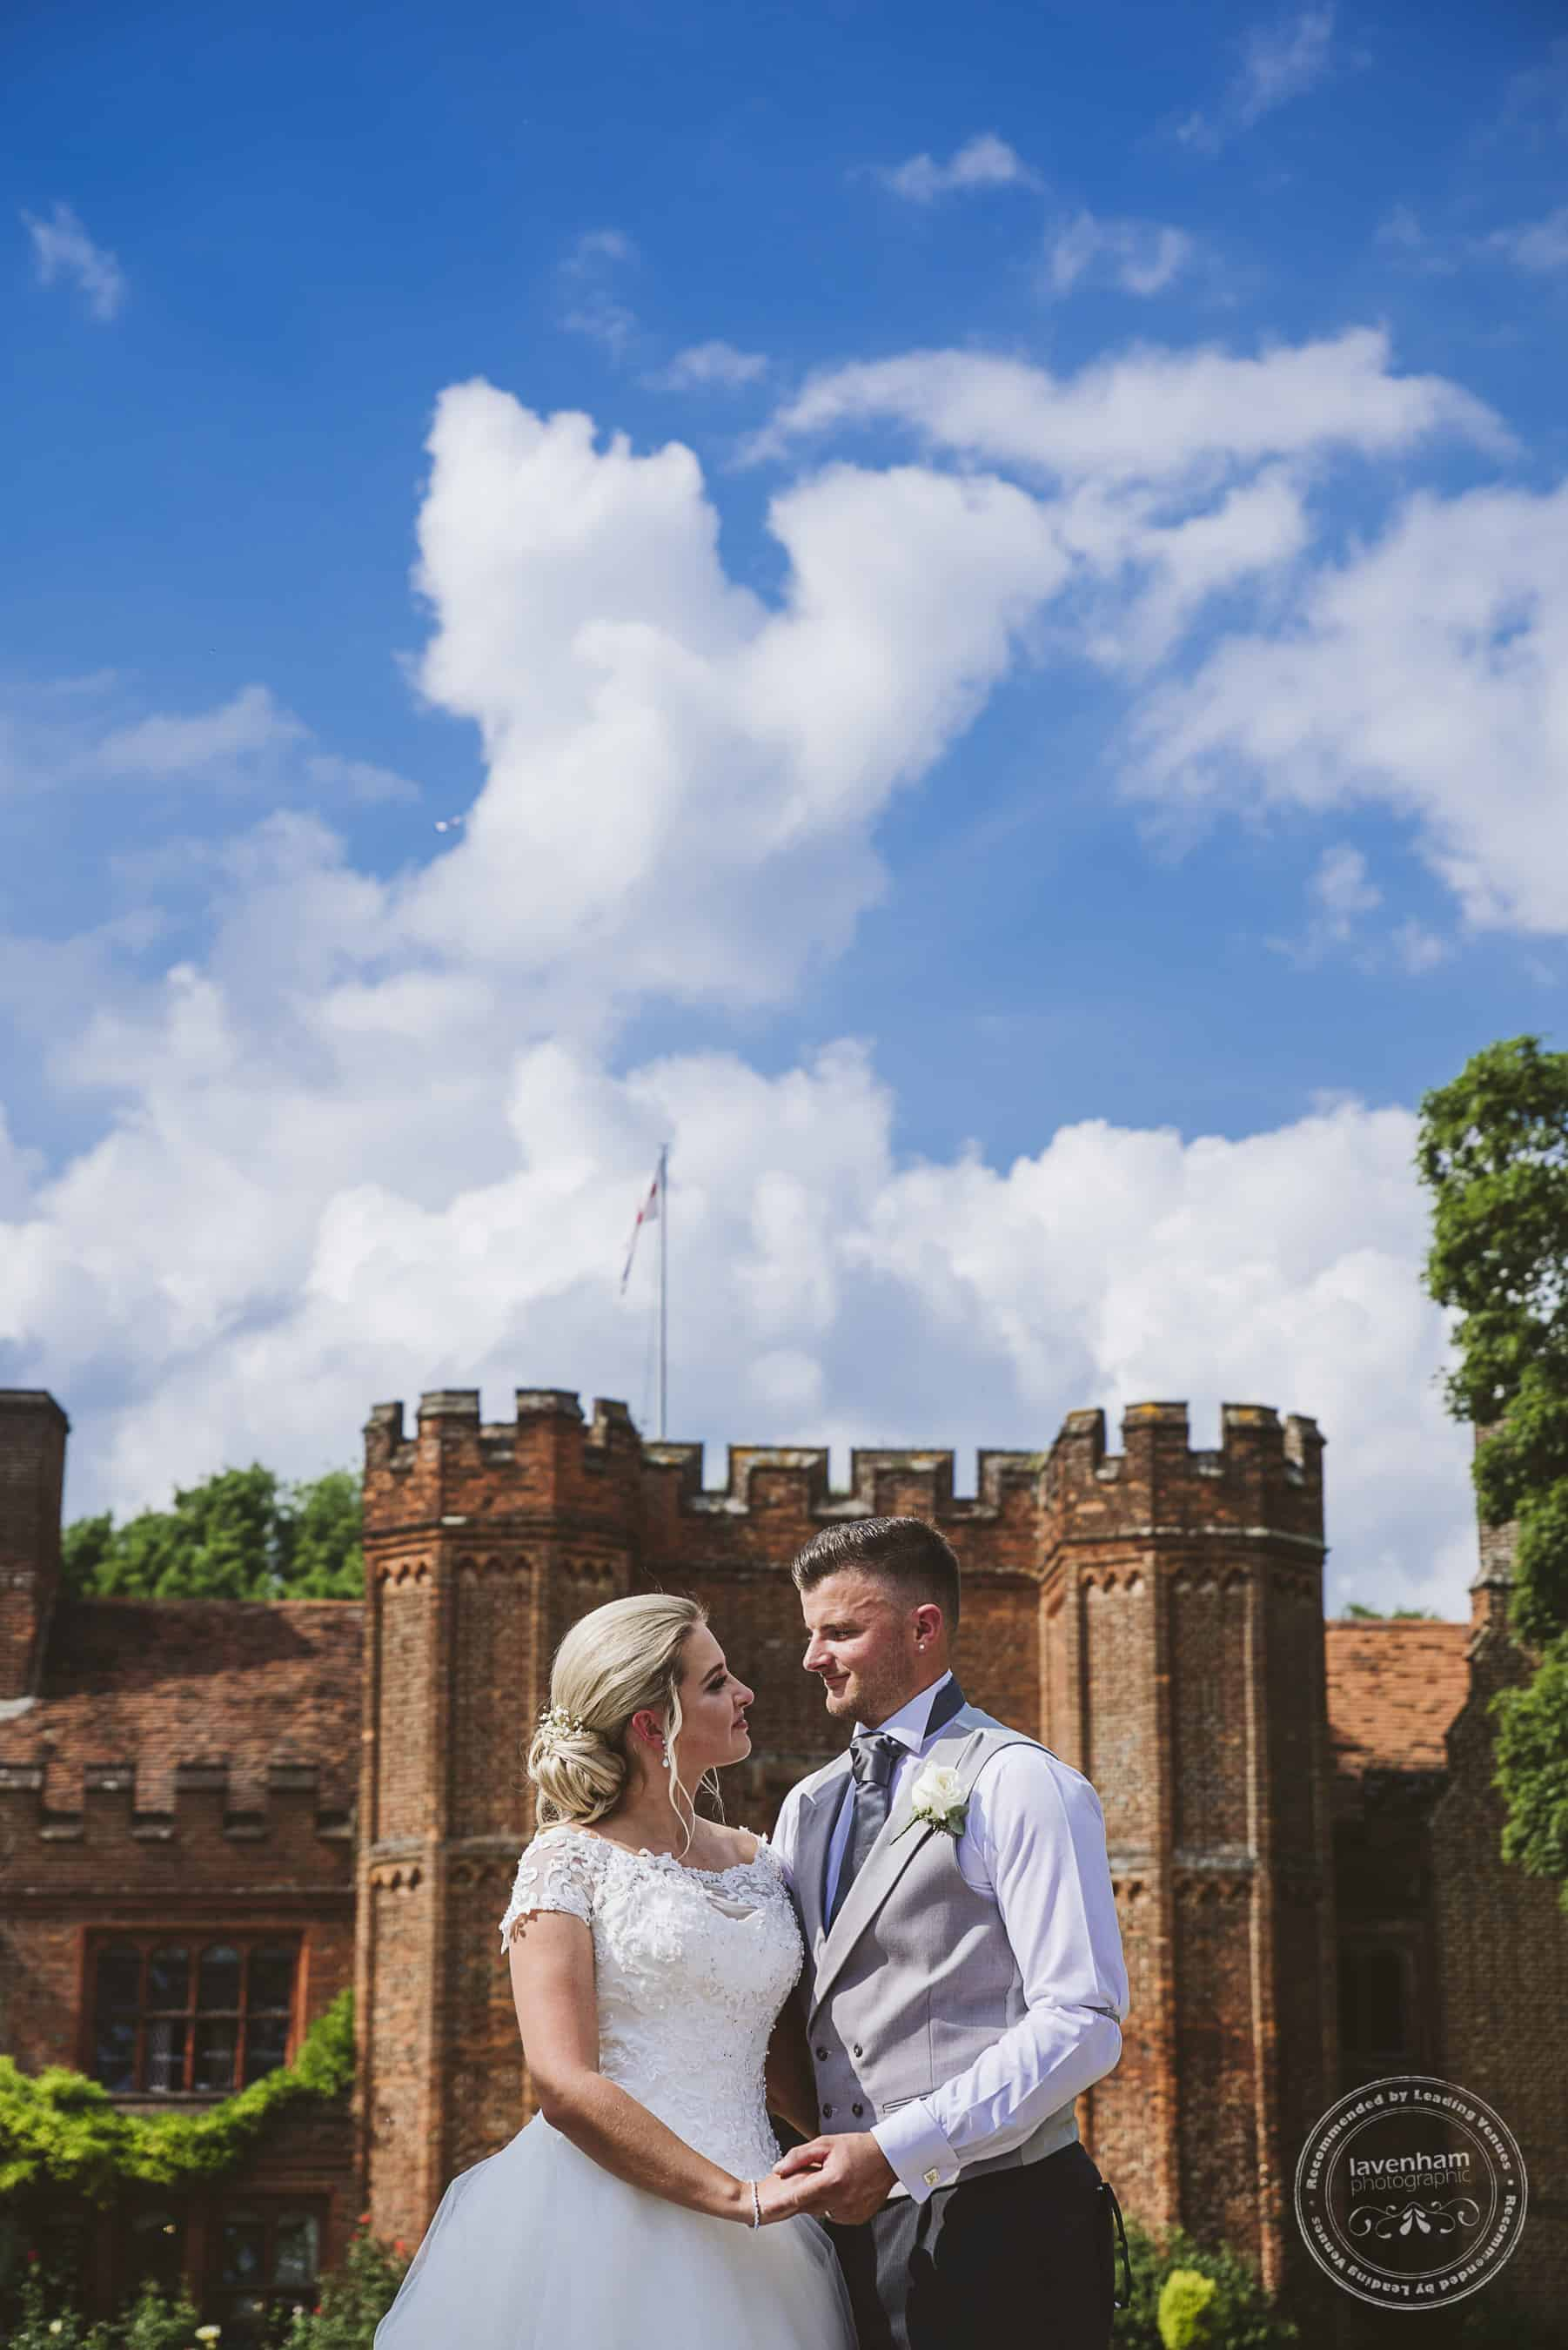 030618 Leez Priory Wedding Photography Lavenham Photographic 090